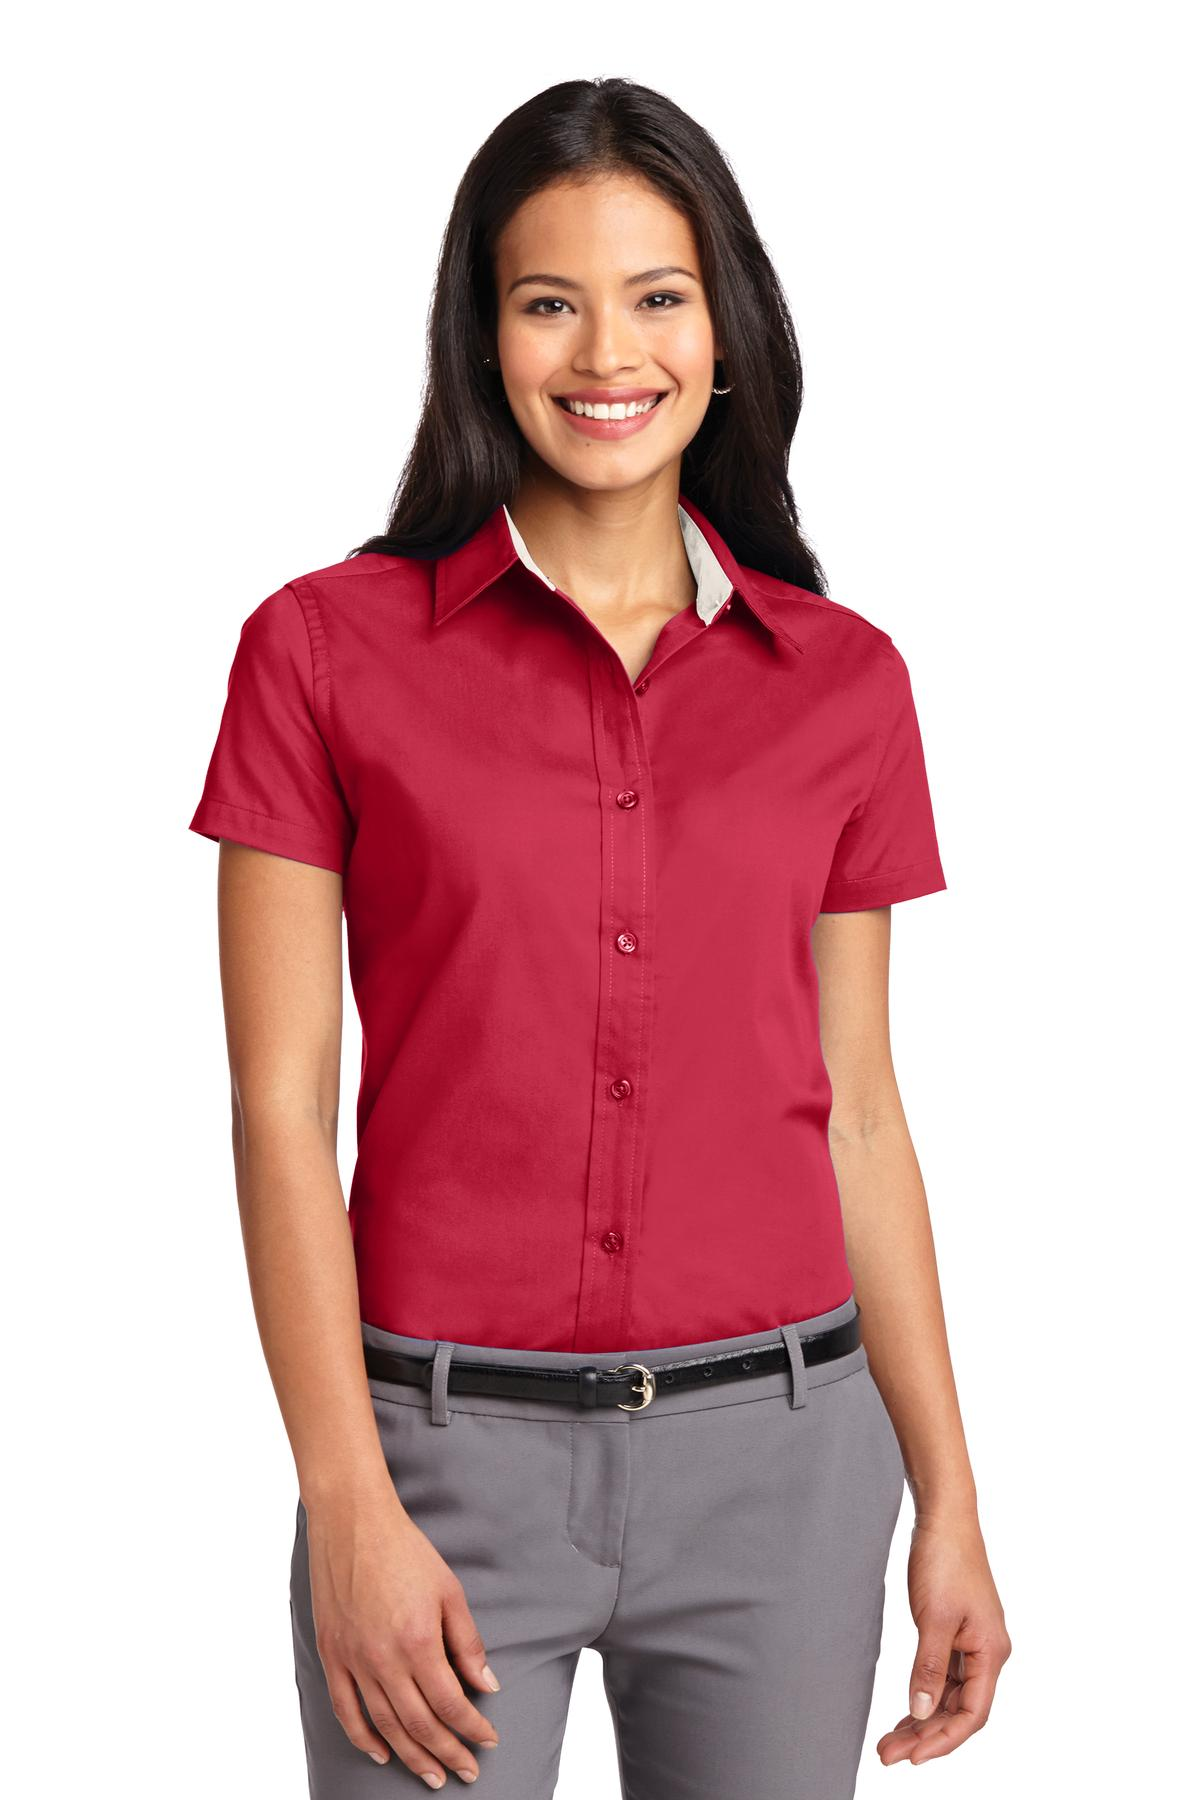 Red / Light Stone Port Authority Ladies Short Sleeve Easy Care Shirt.